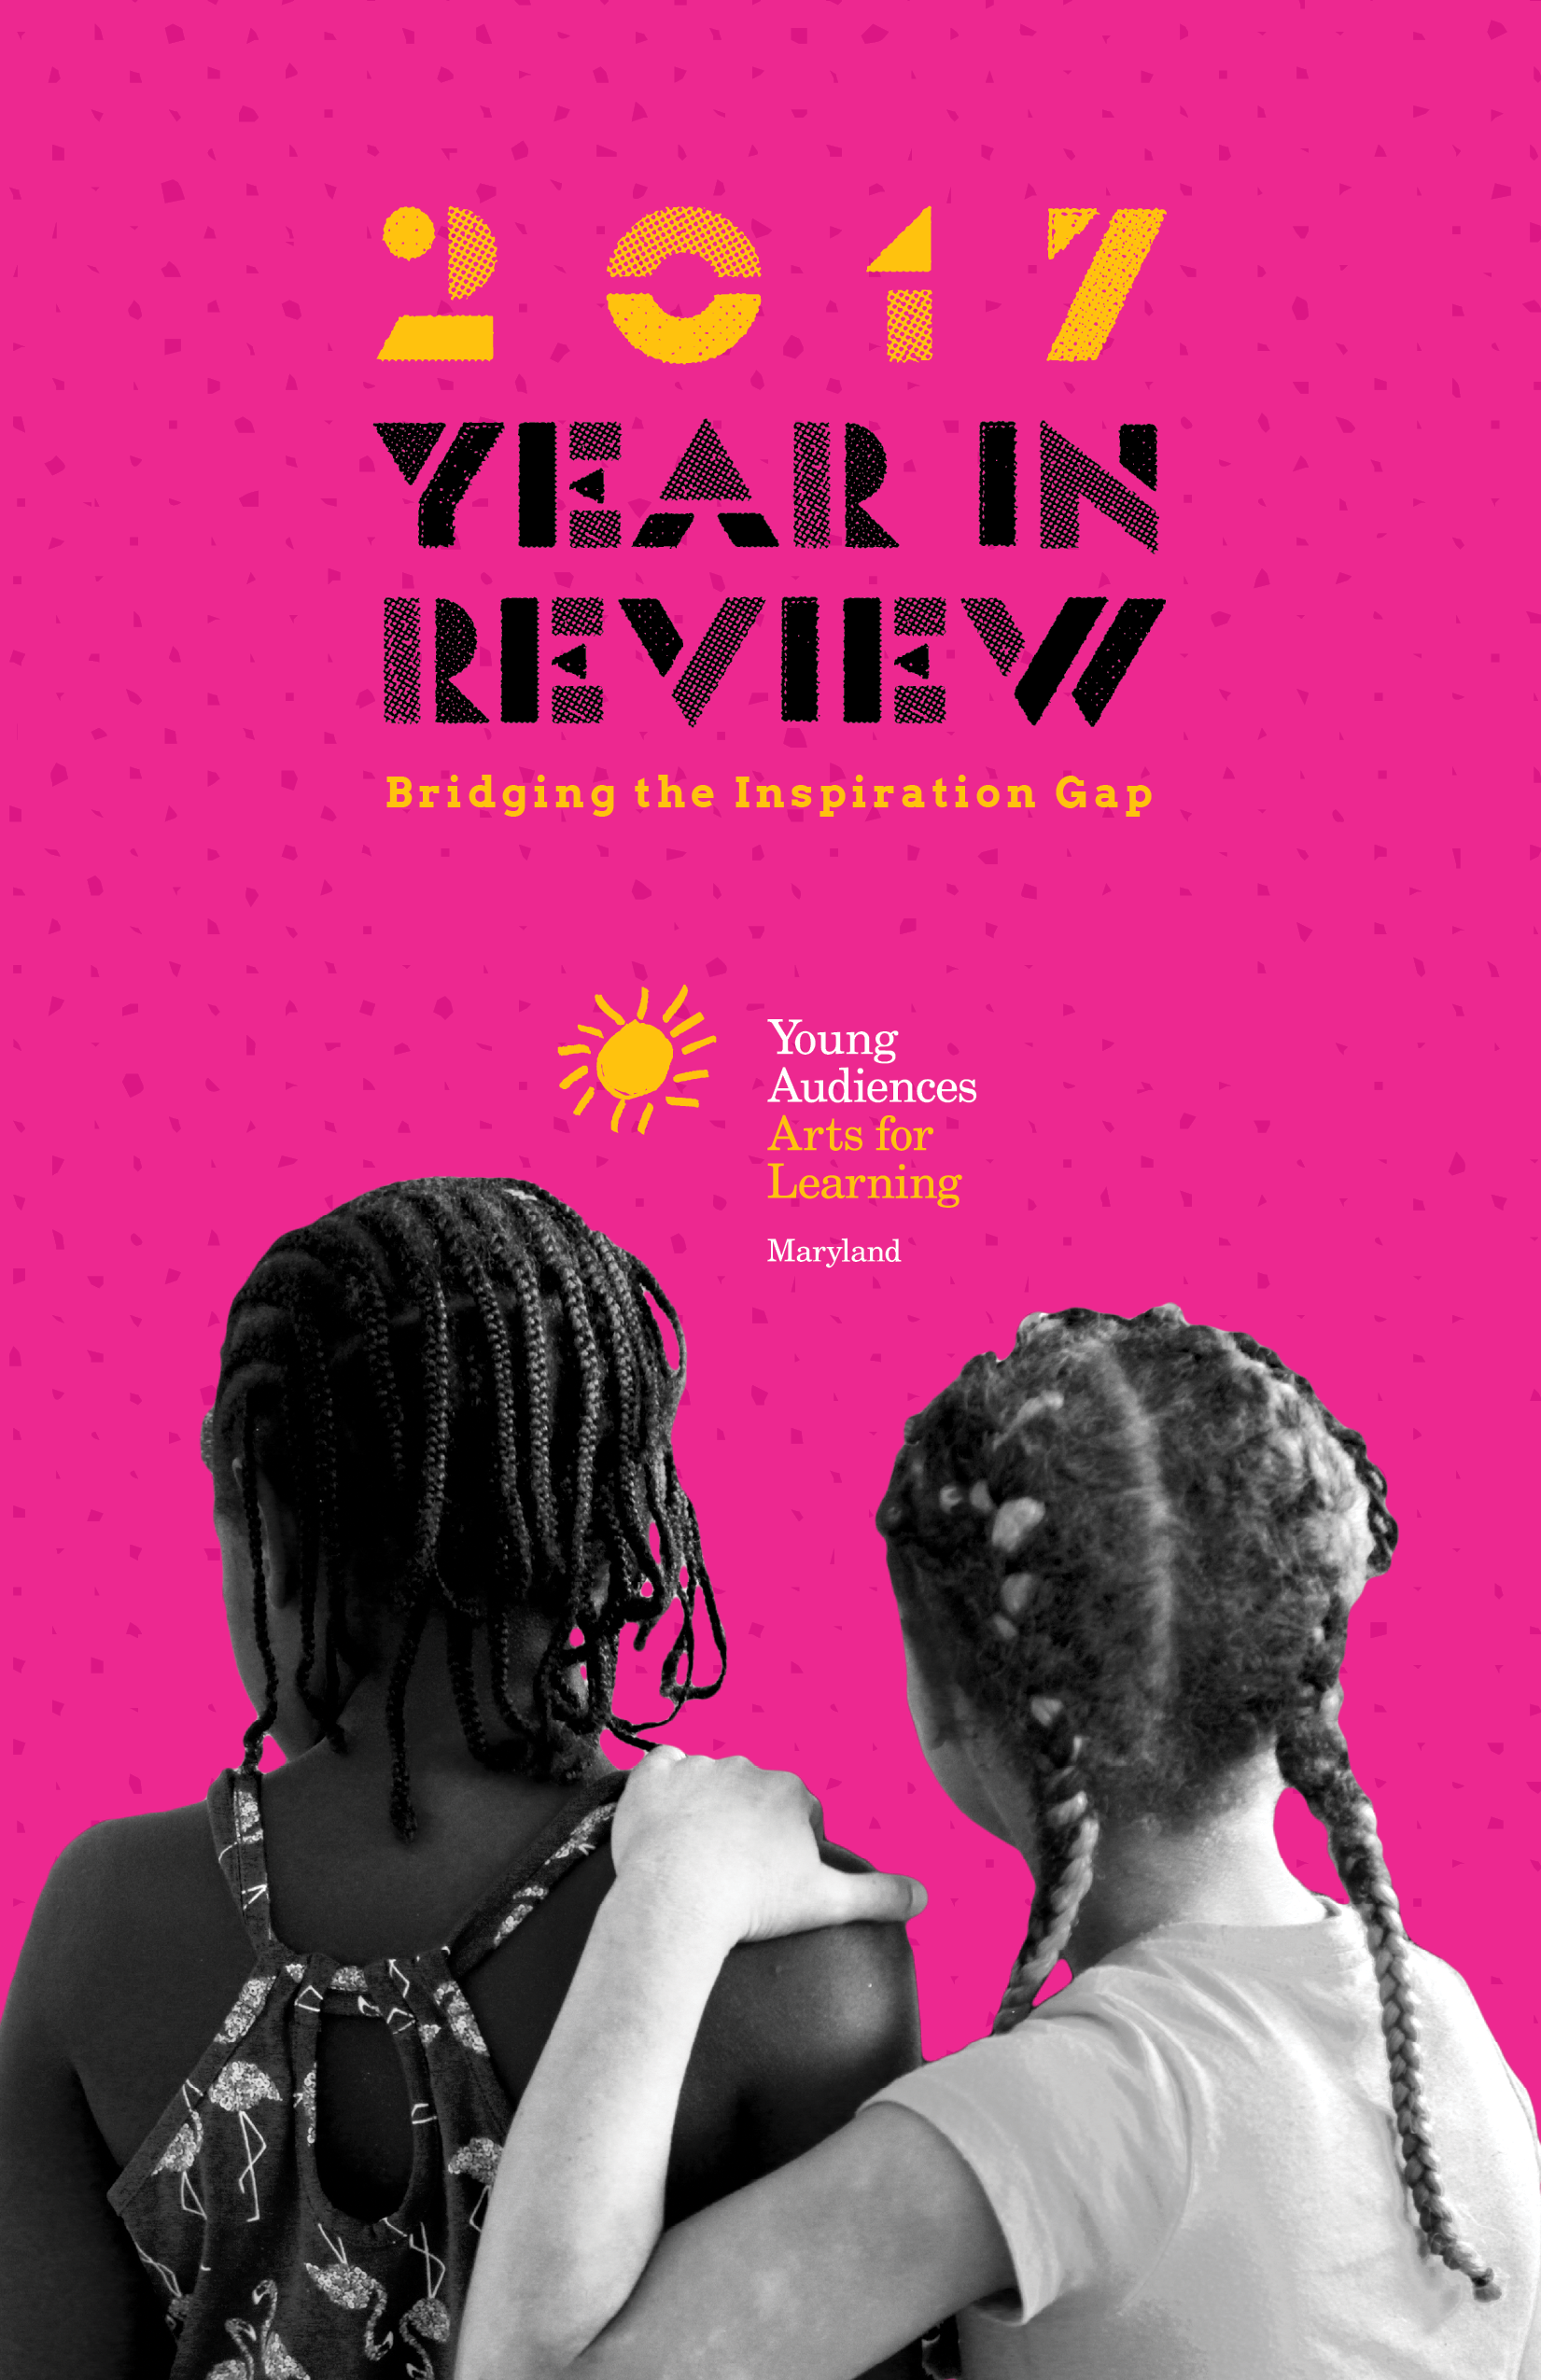 View-the-2017-Year-in-Review